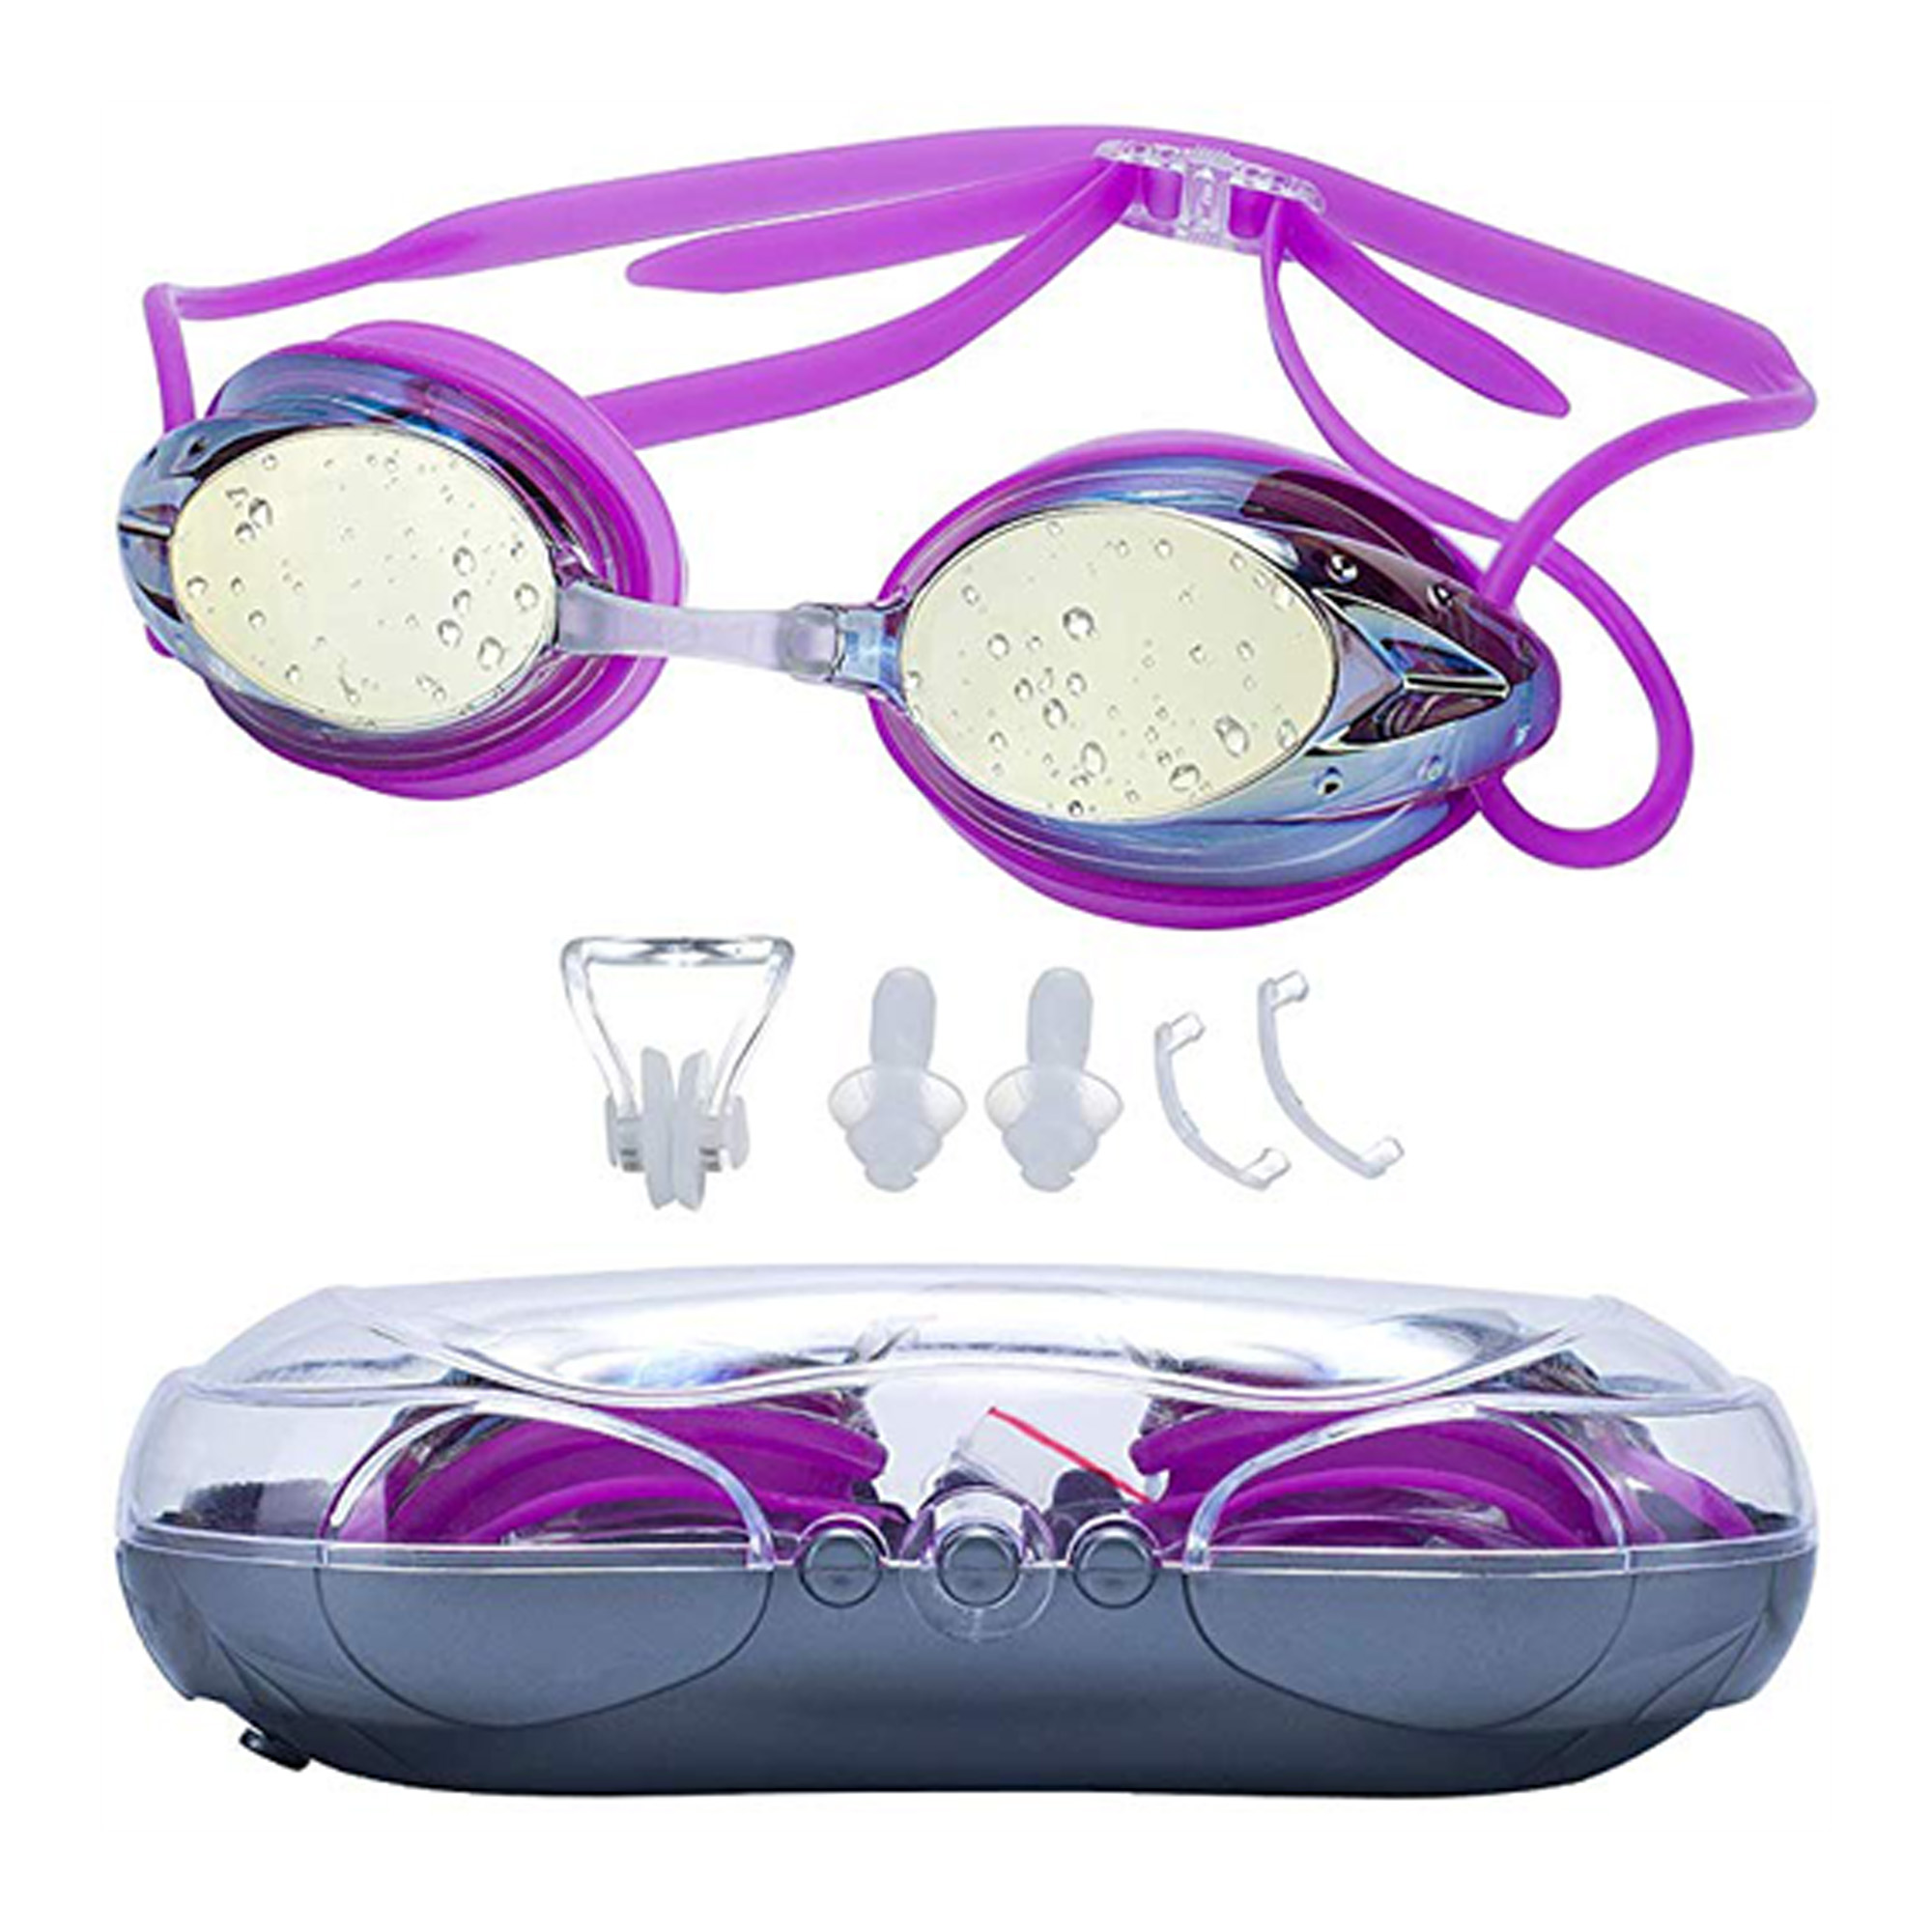 C.F.GOGGLE Swimming Goggles Anti Fog Shatterproof UV Protection, No Leaking with Silicone Nose Clip Ear Plugs and Protection Case Swimming Goggles Suit for Men Women Kids,White/ Pink/ Black